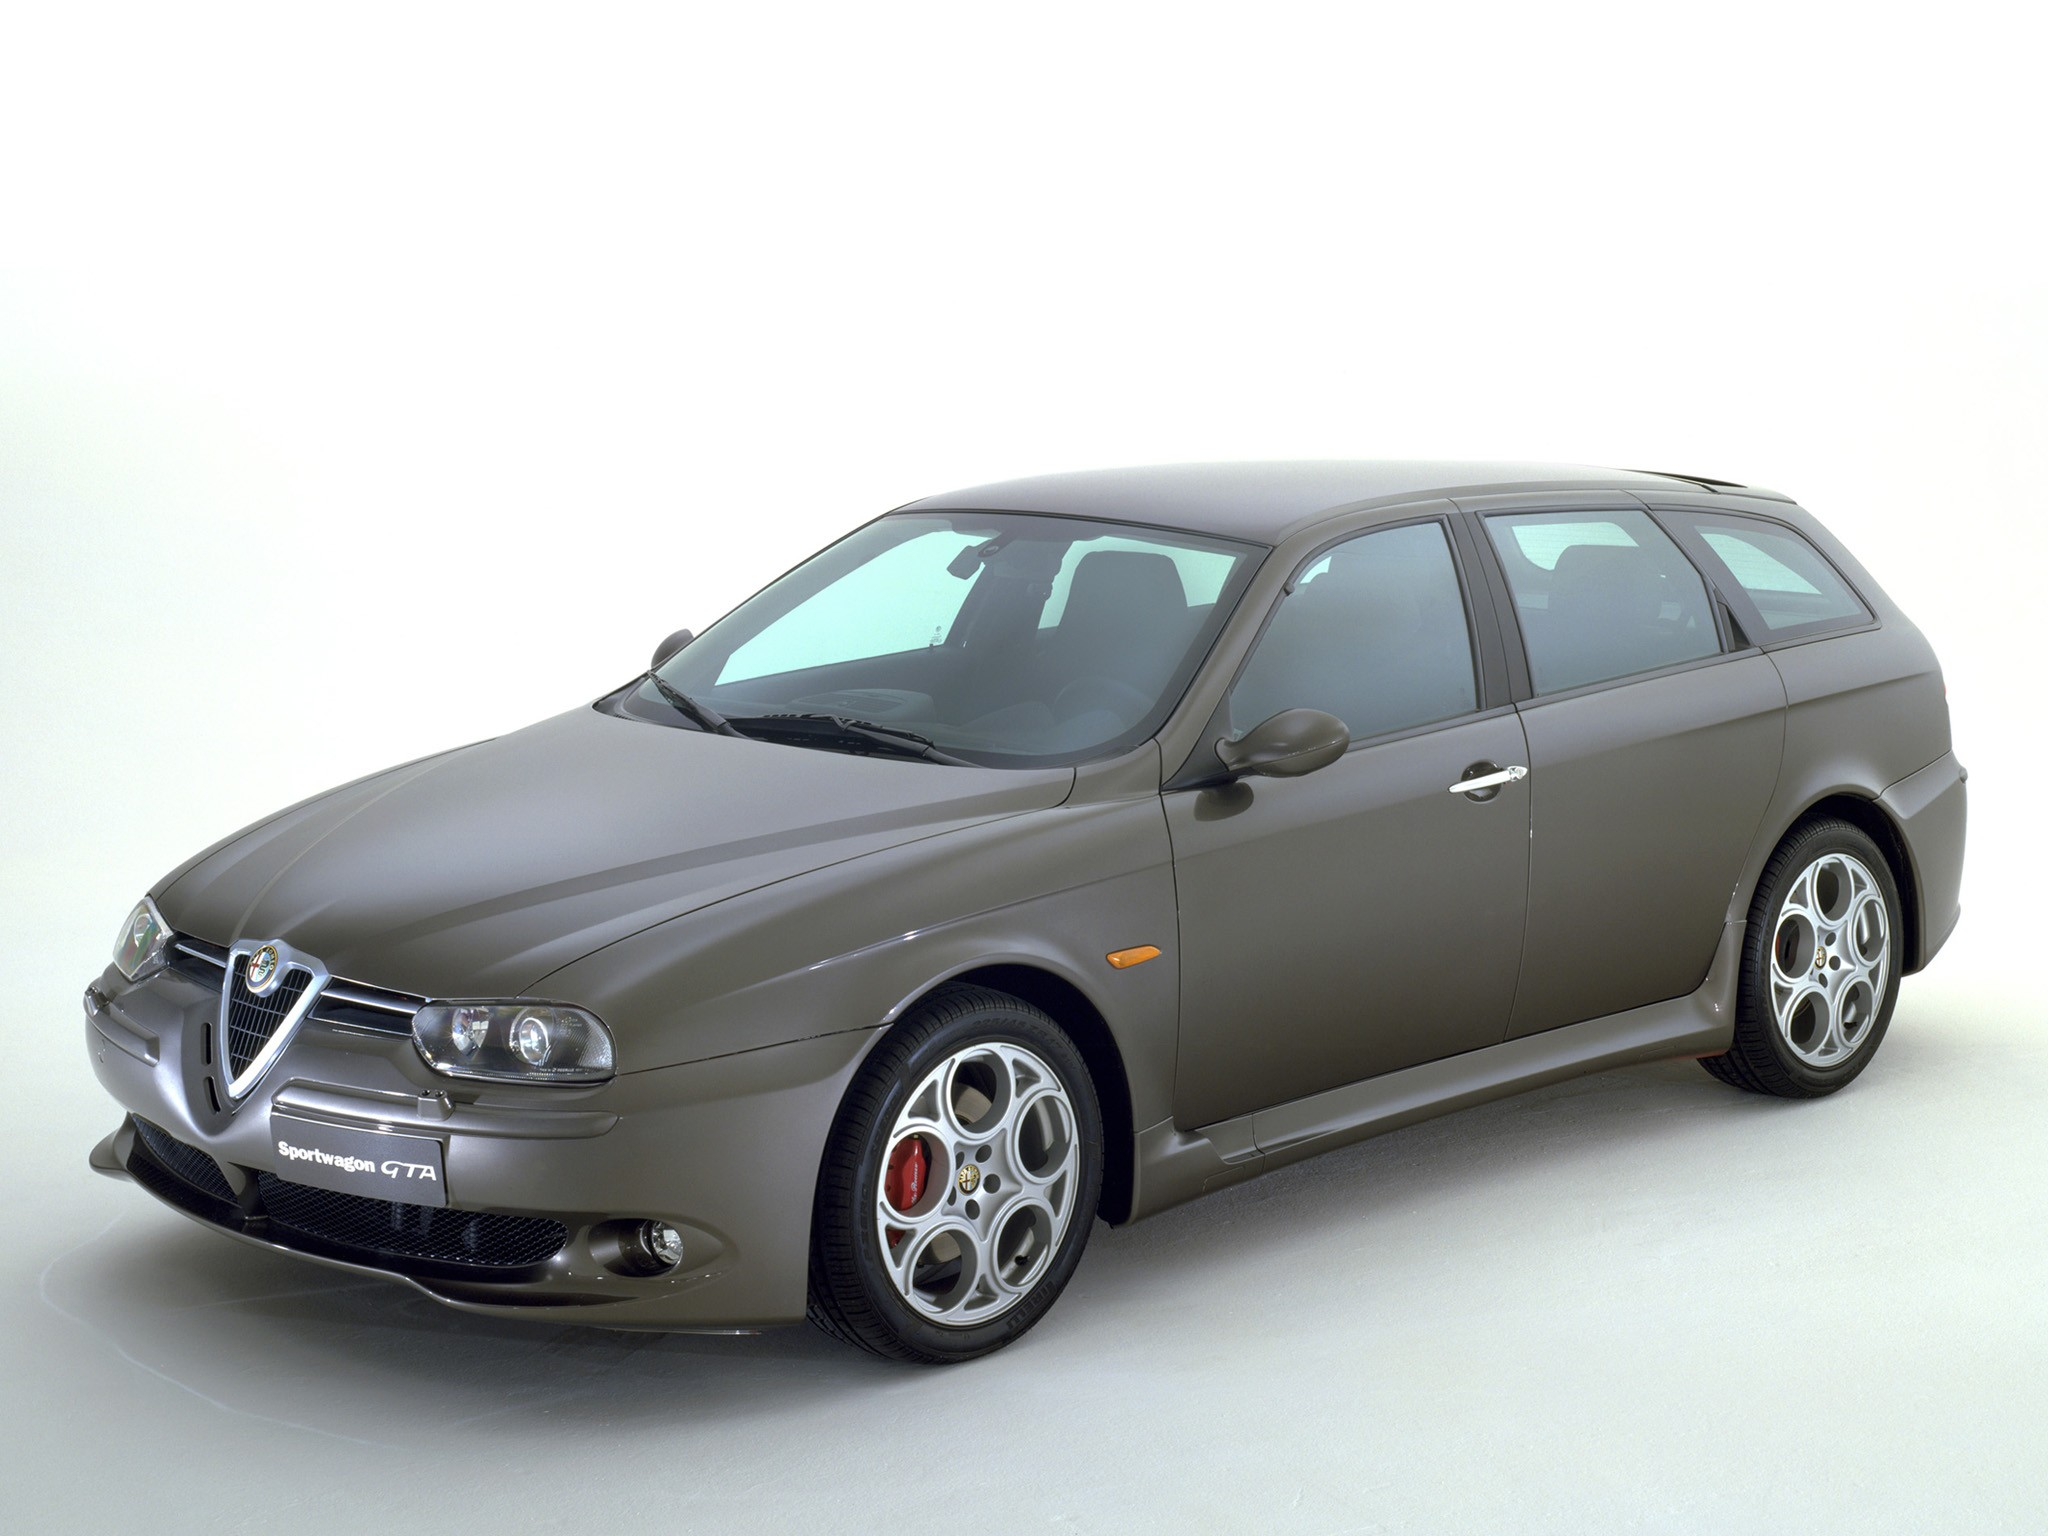 alfa romeo 156 sportwagon gta specs 2002 2003 2004 2005 autoevolution. Black Bedroom Furniture Sets. Home Design Ideas